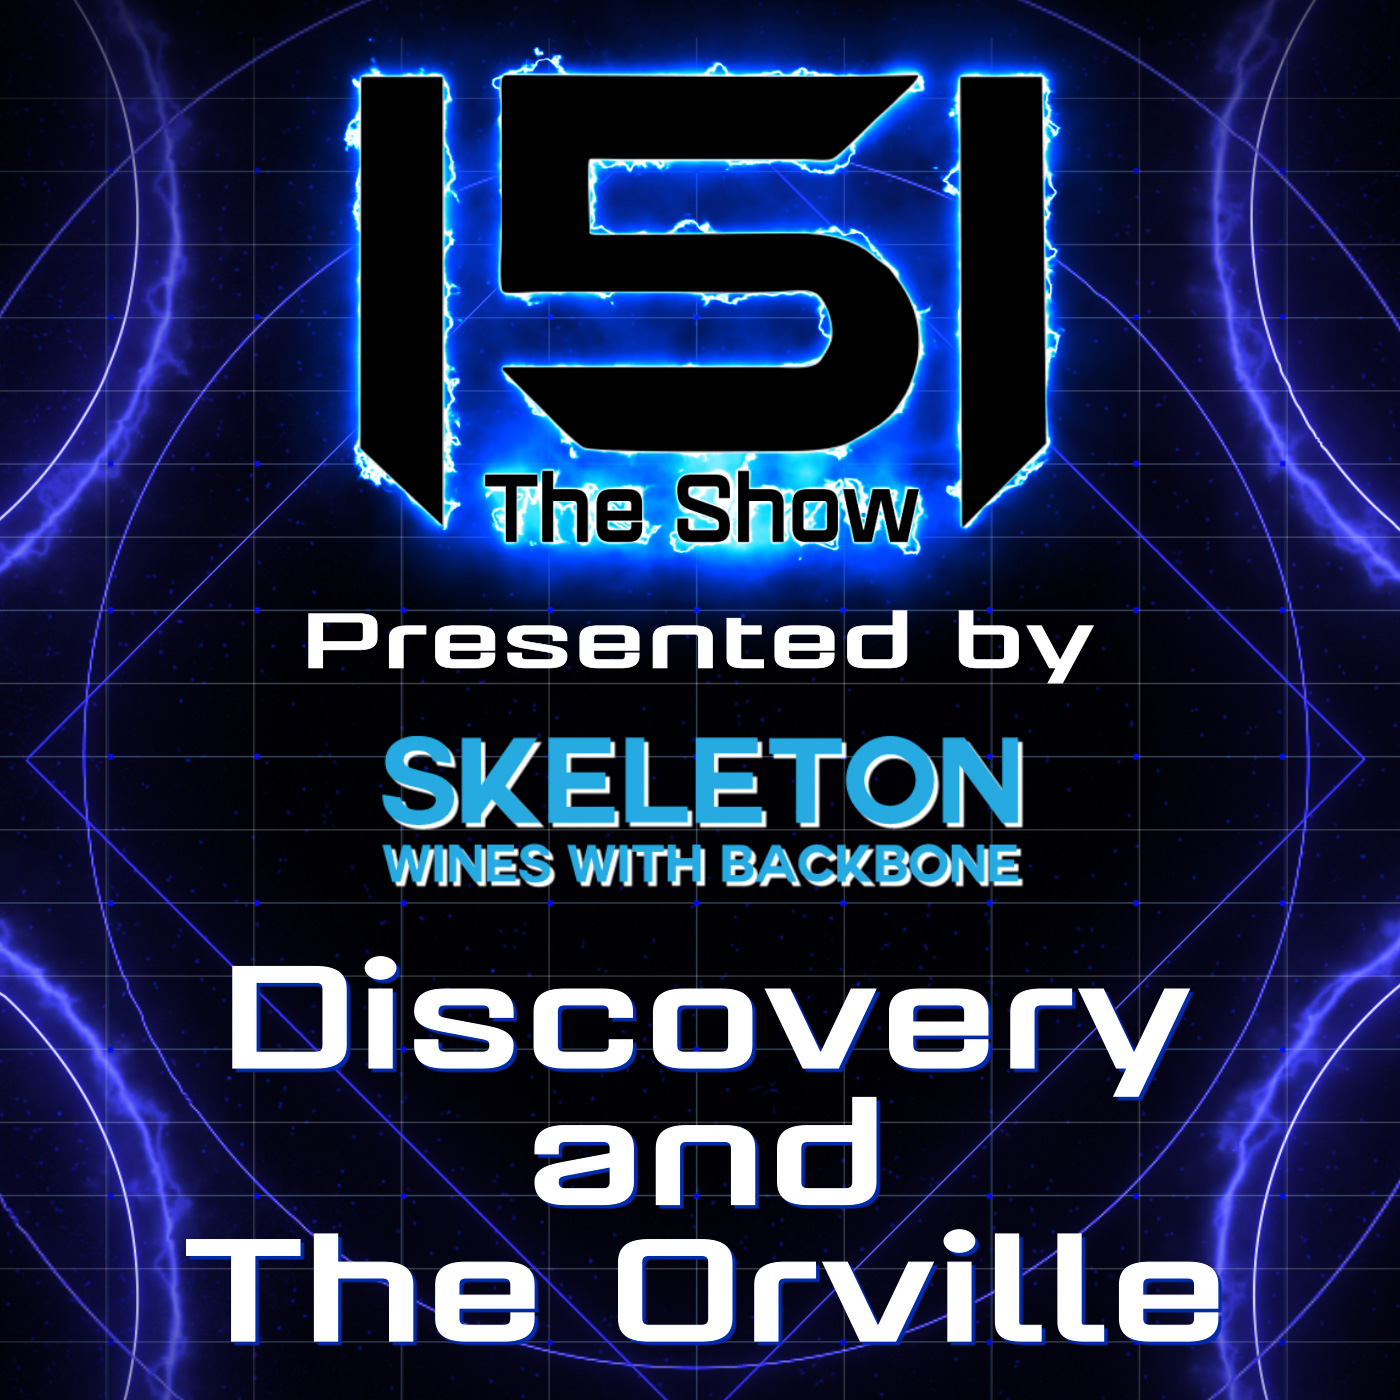 Discovery and The Orville